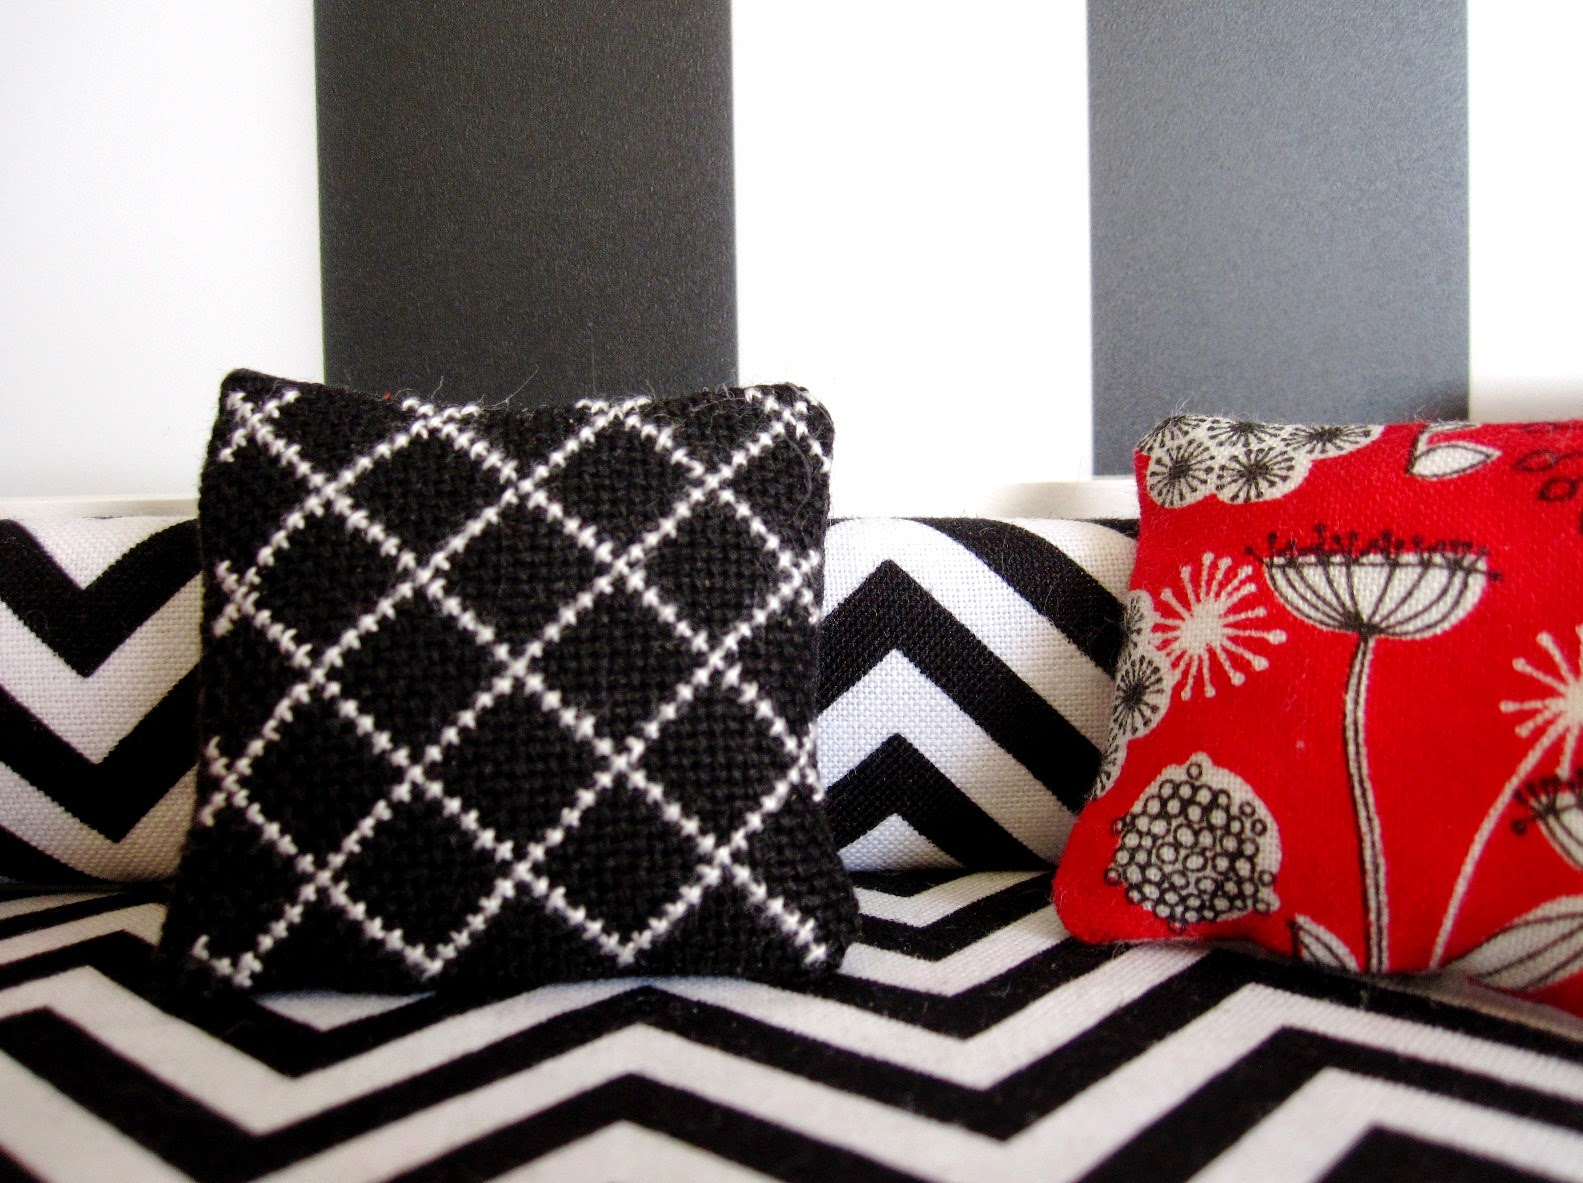 Modern miniature scene of a black and white lattice-embroidered cushion on a black and white chevron sofa against a wall with large black and white stripes. In the right corner is a red black and white mid-century modern flowered cushion.